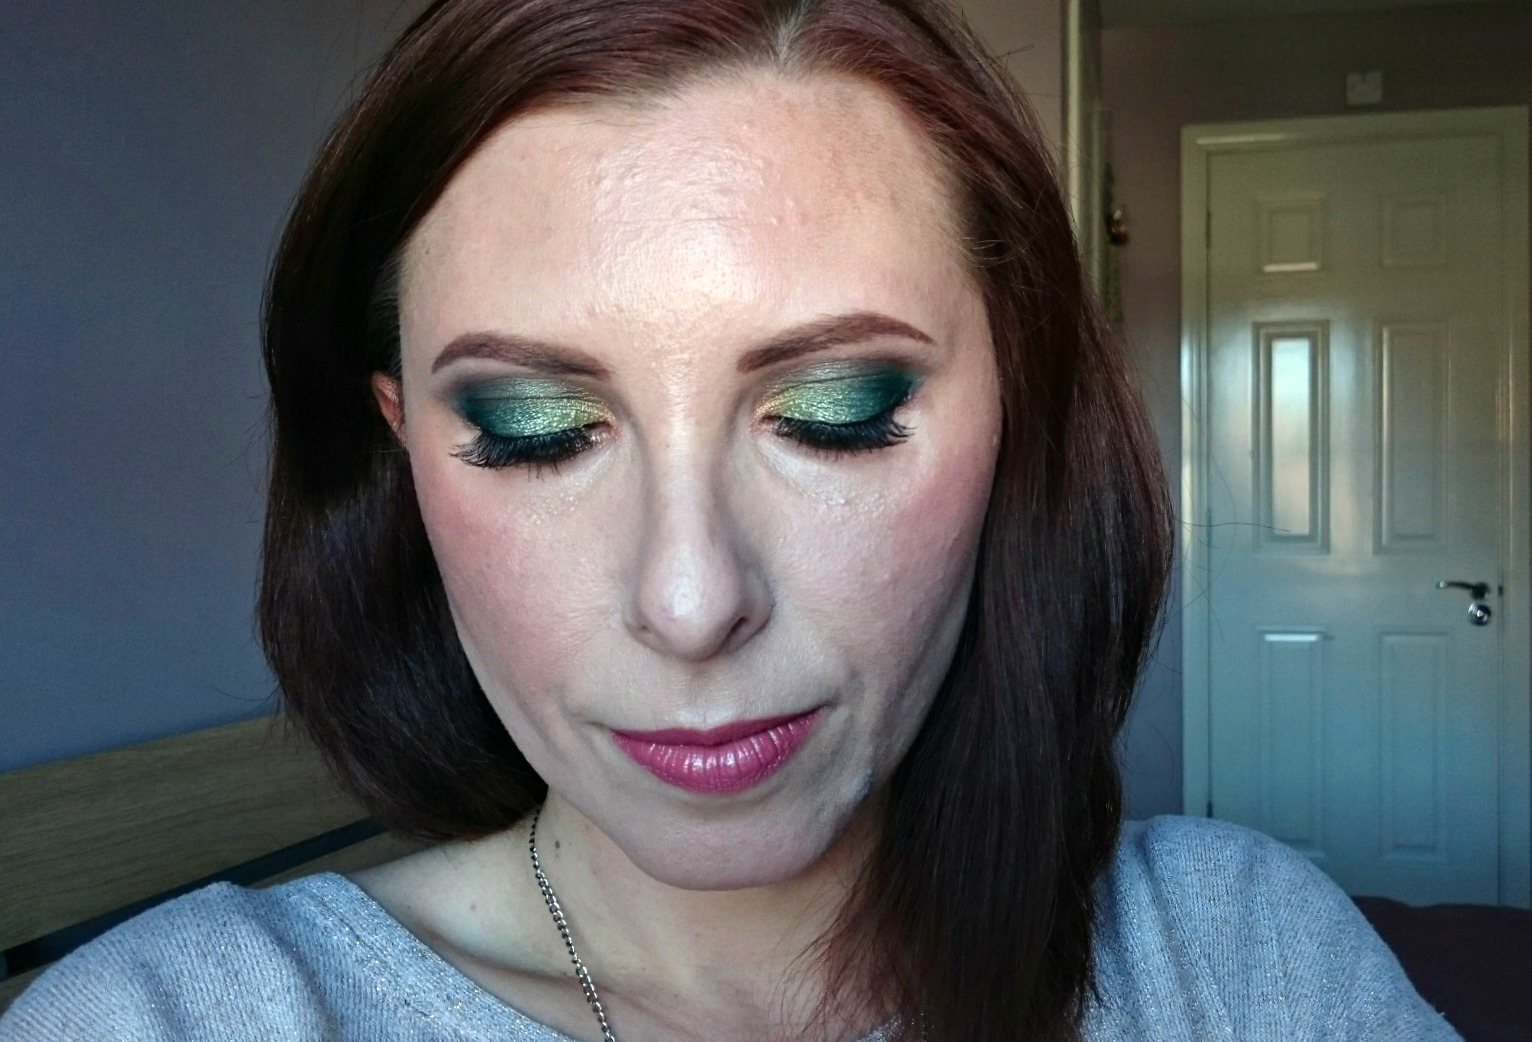 Garden of Eden makeup look